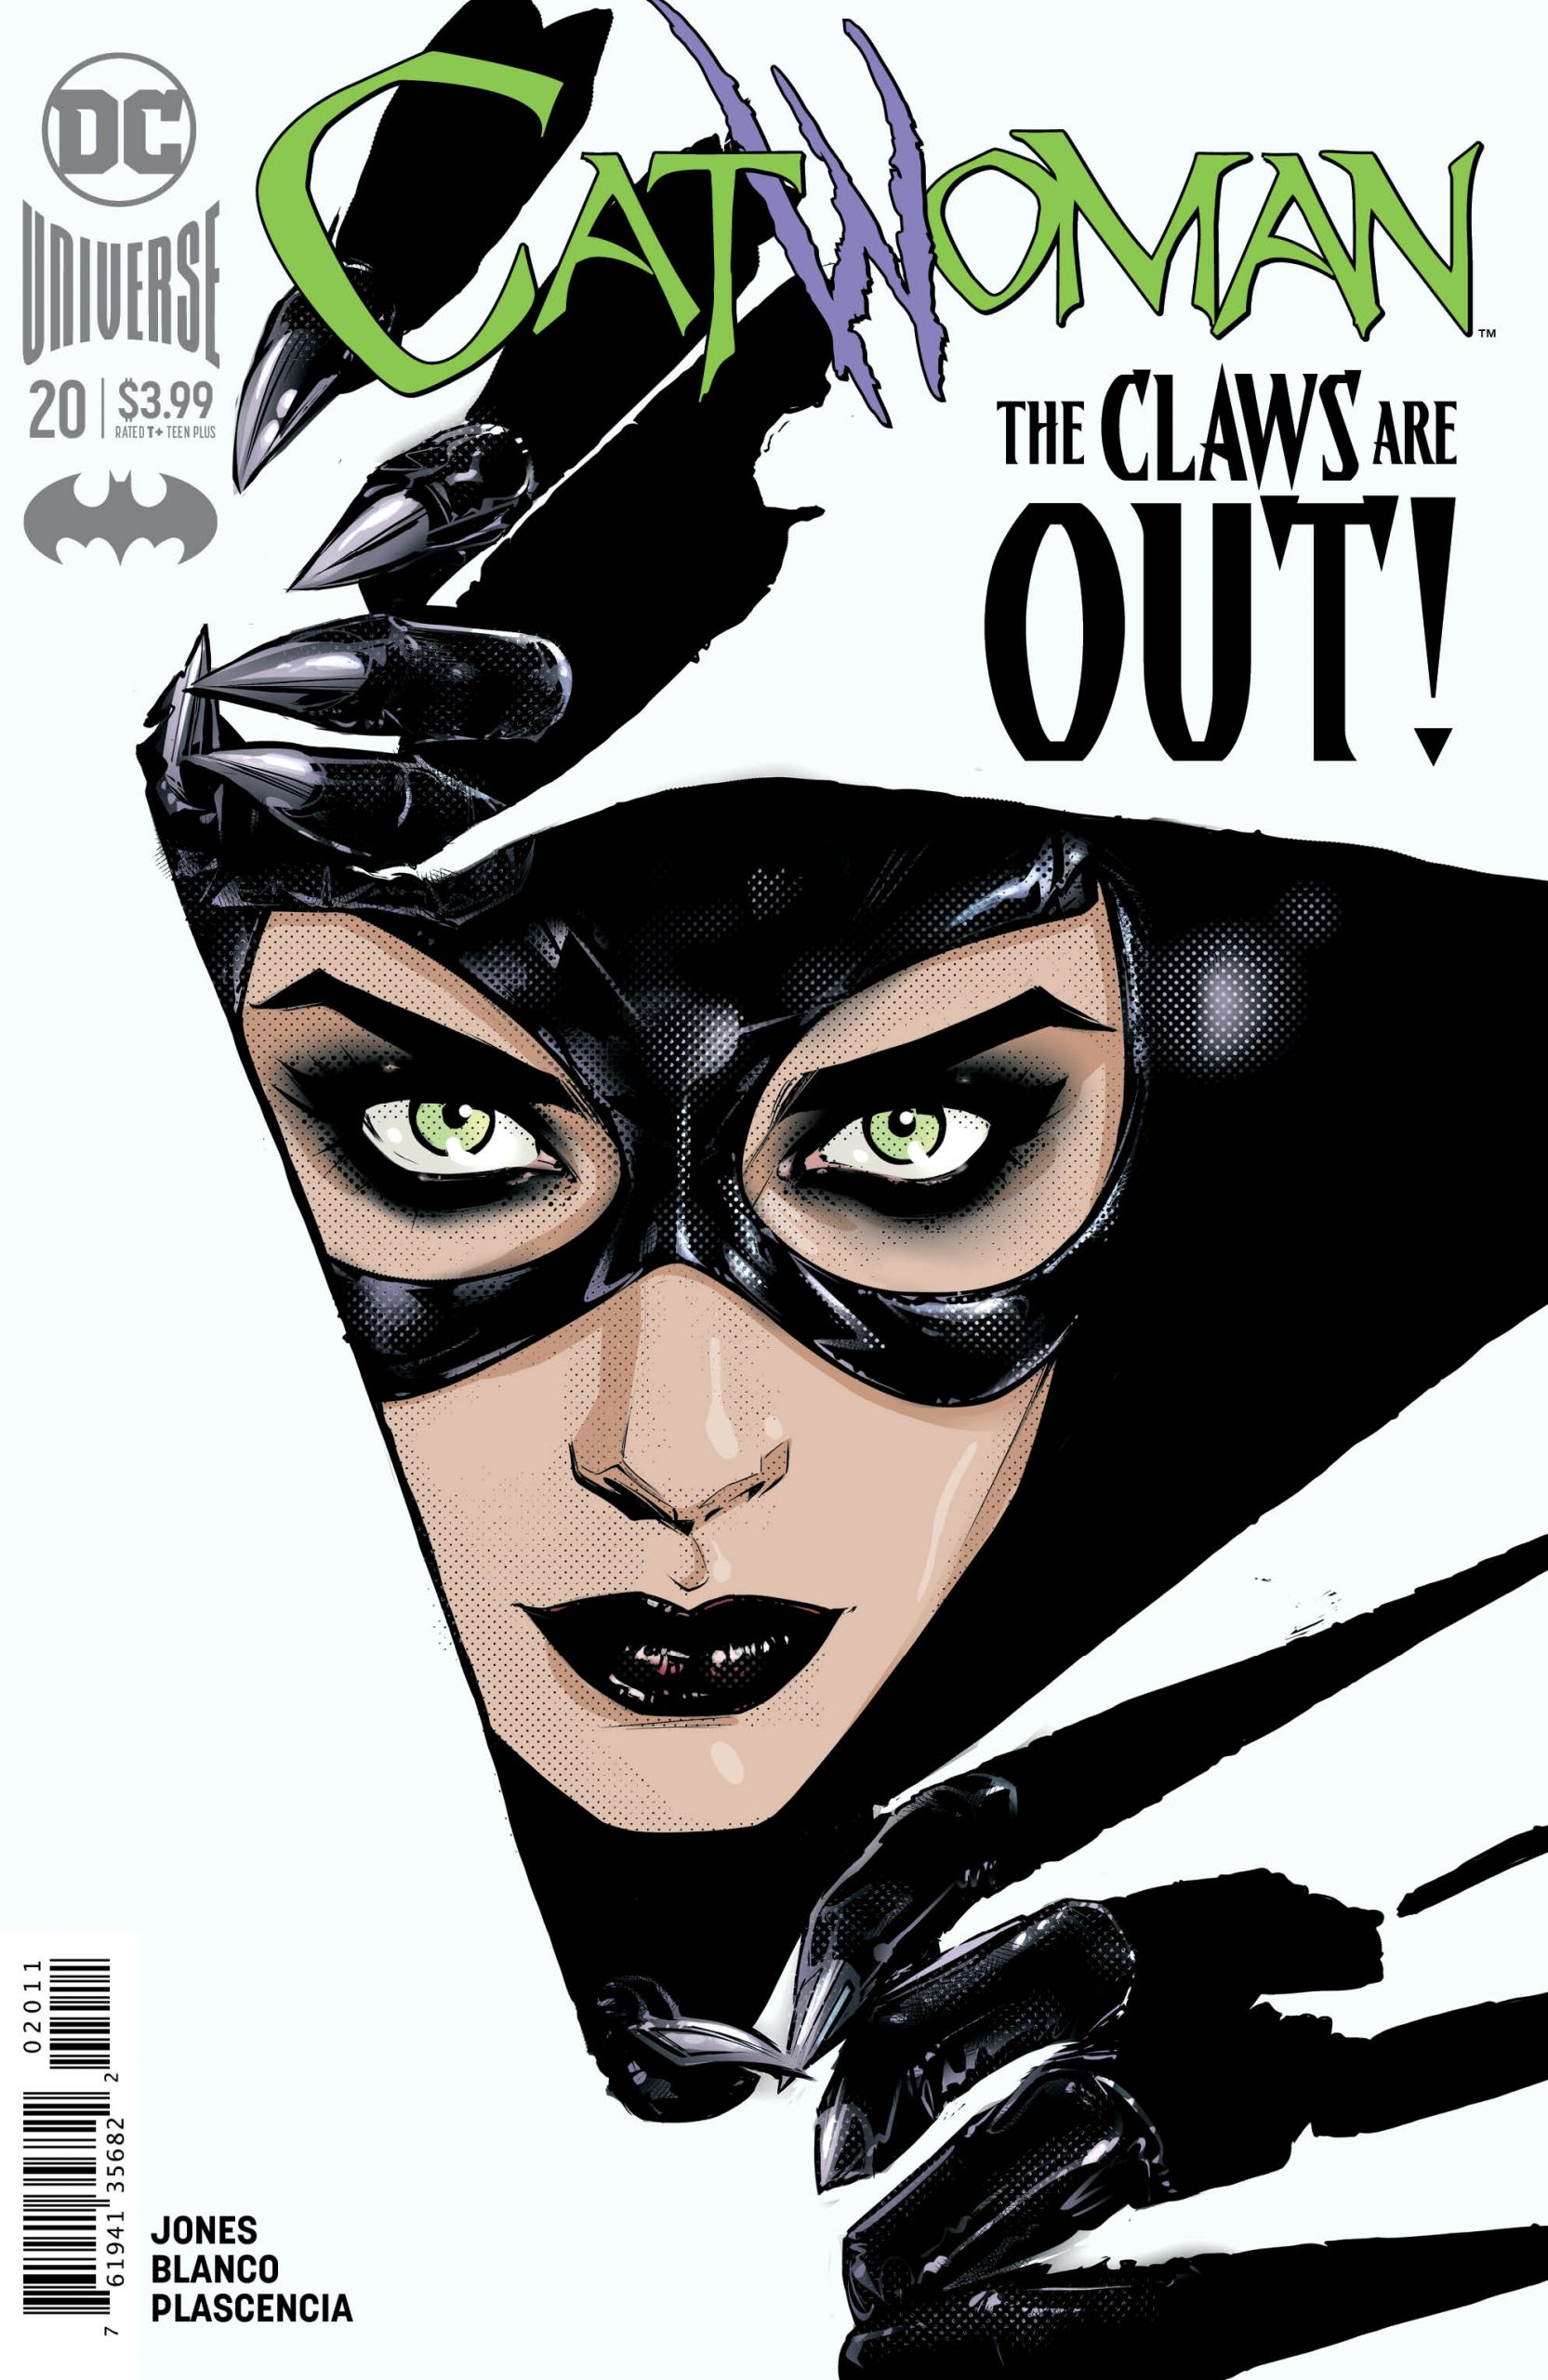 DC Preview: Catwoman #20